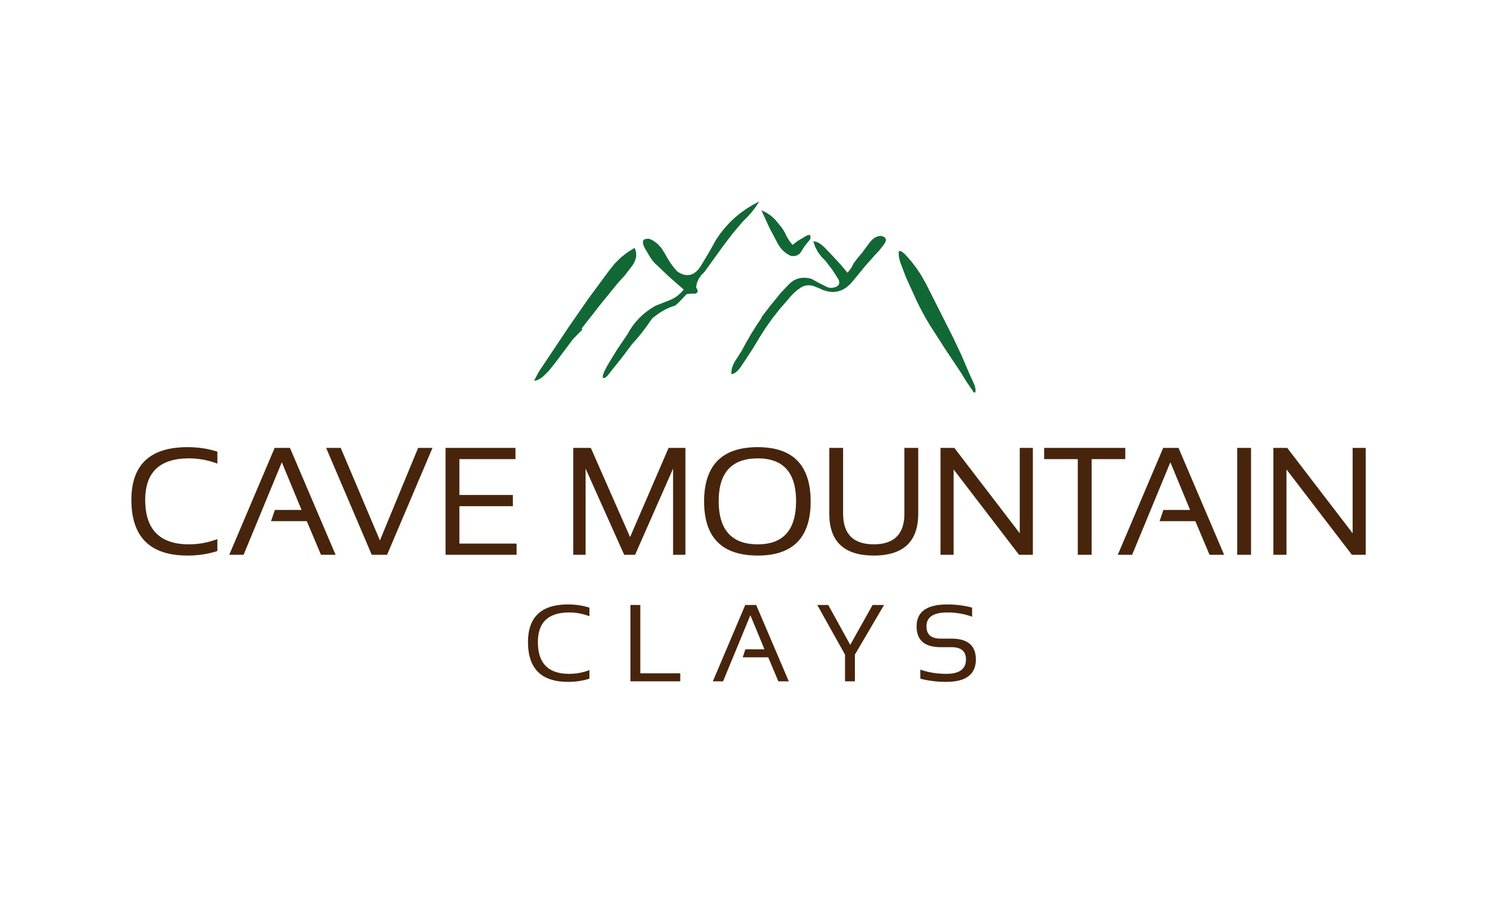 Cave Mountain Clays